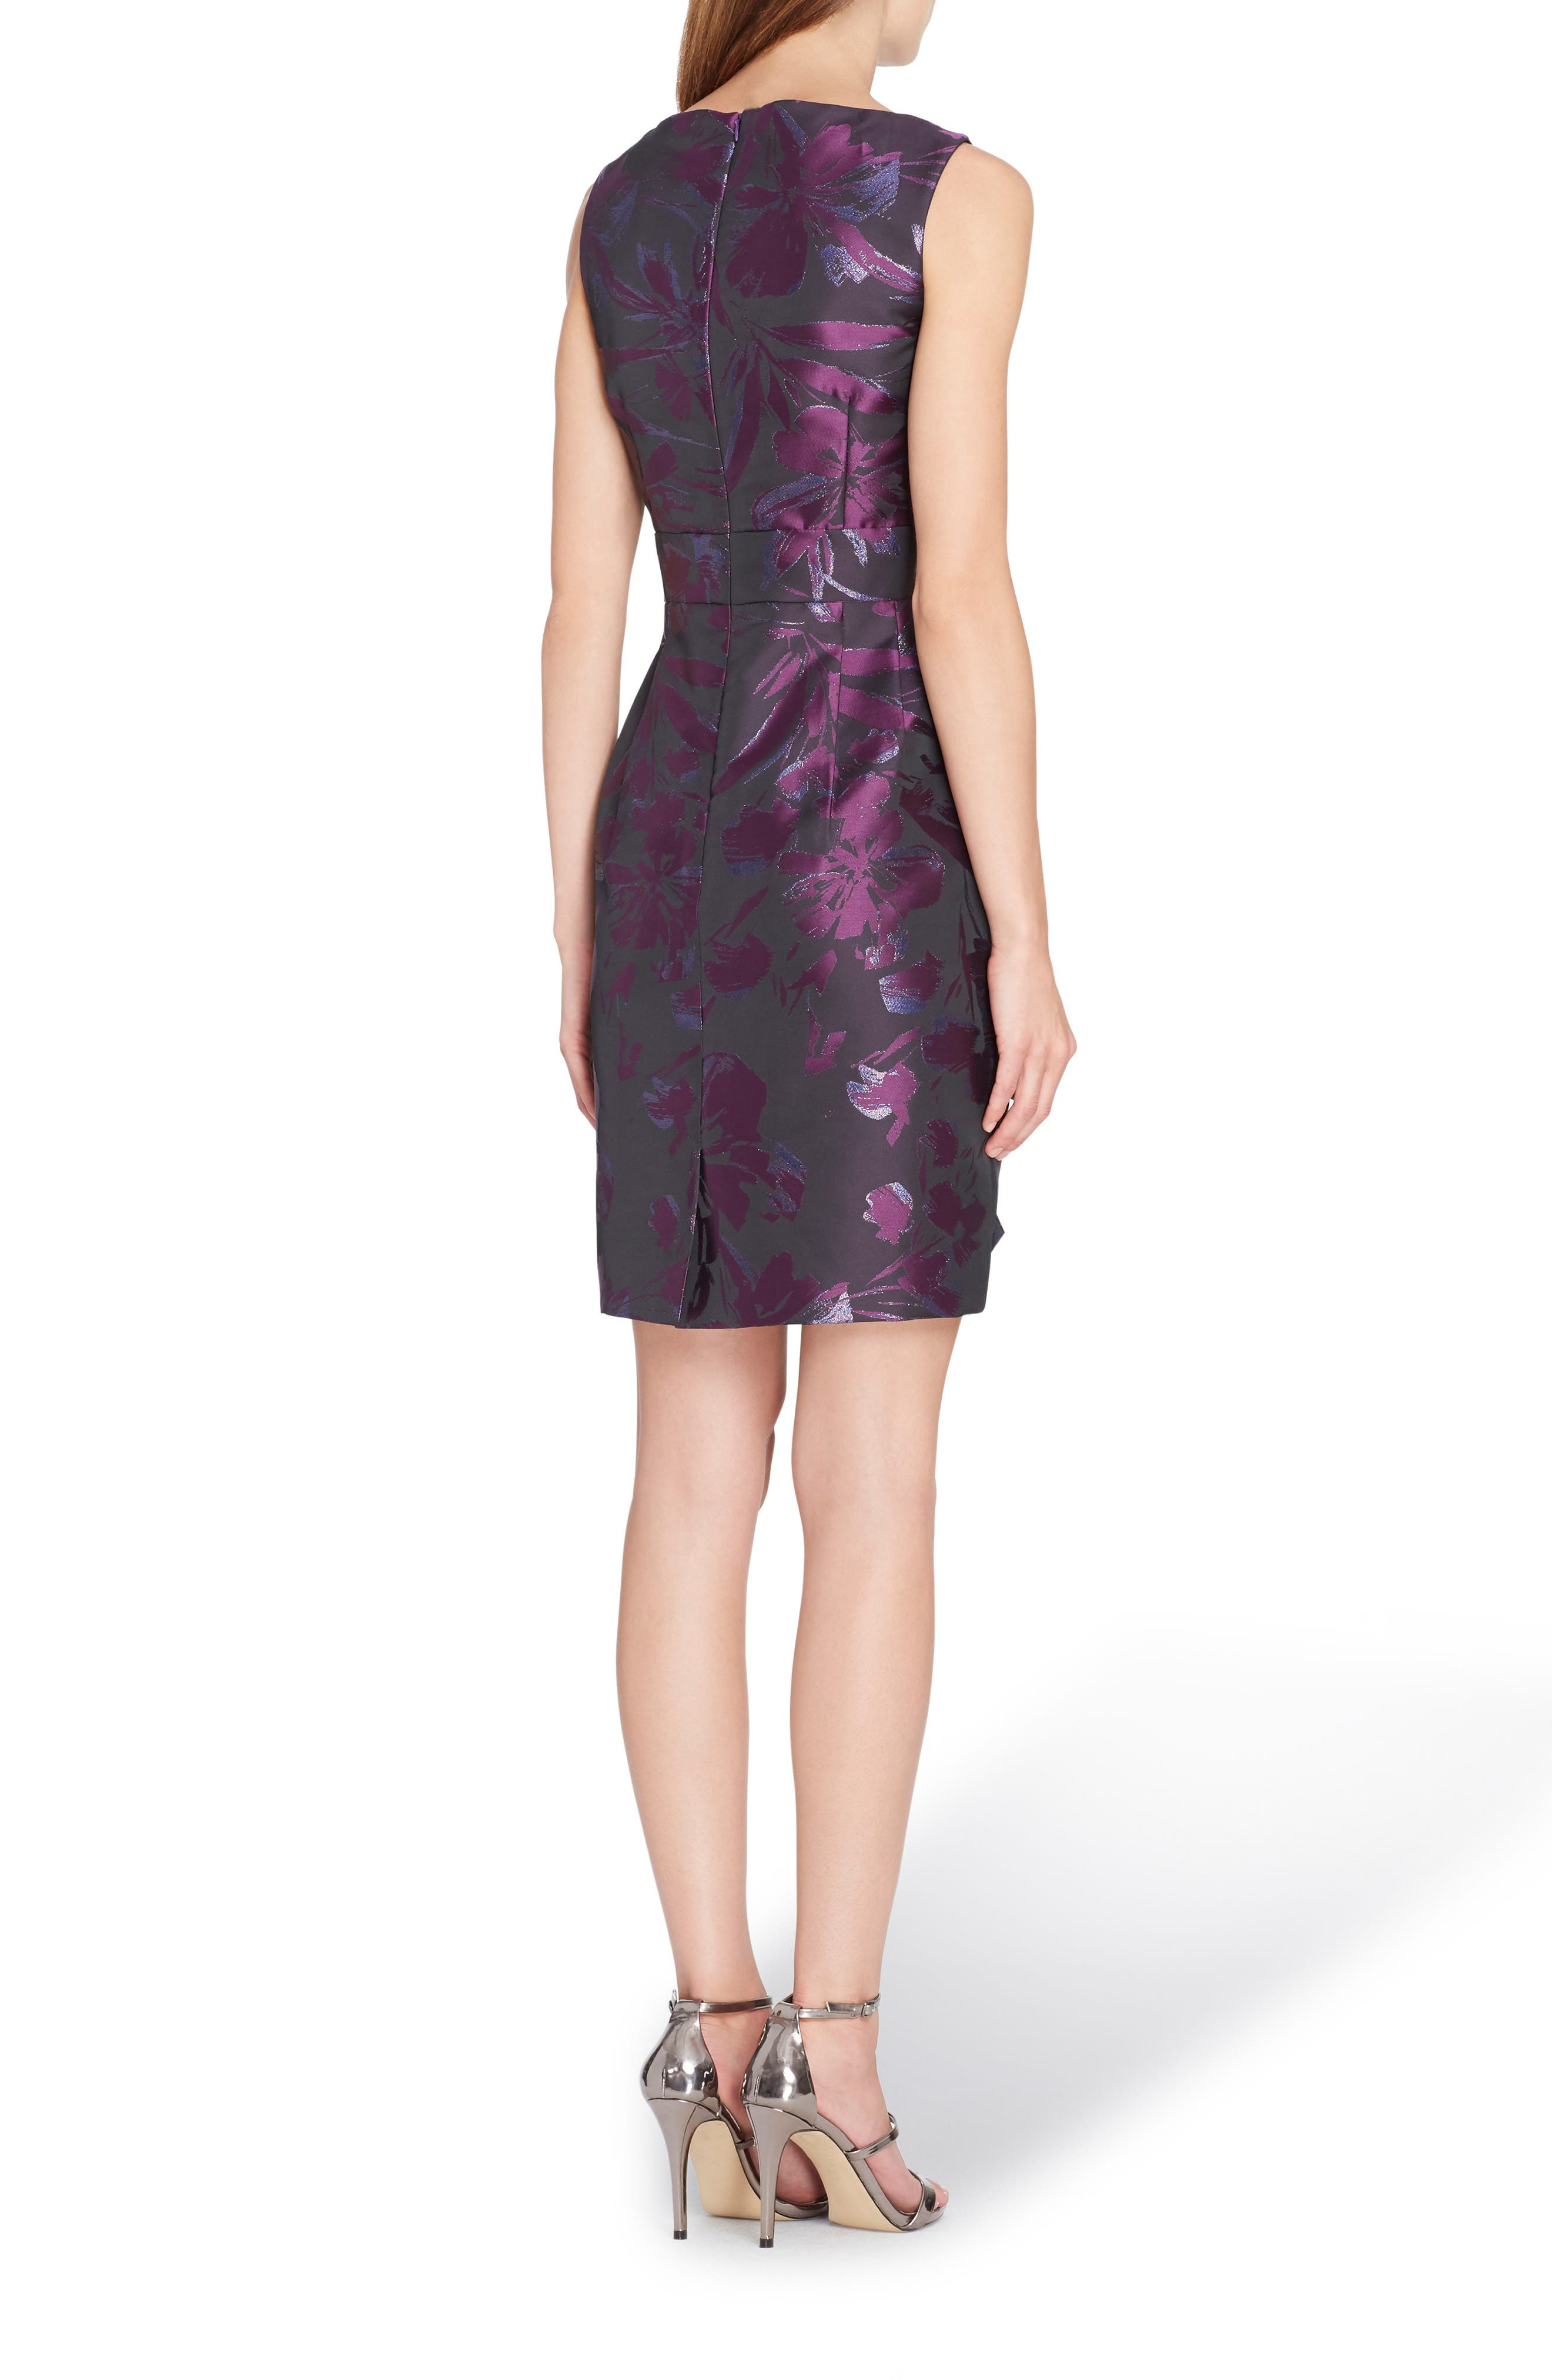 Metallic Jacquard Sheath Dress,                             Alternate thumbnail 2, color,                             Black/ Plum/ Navy